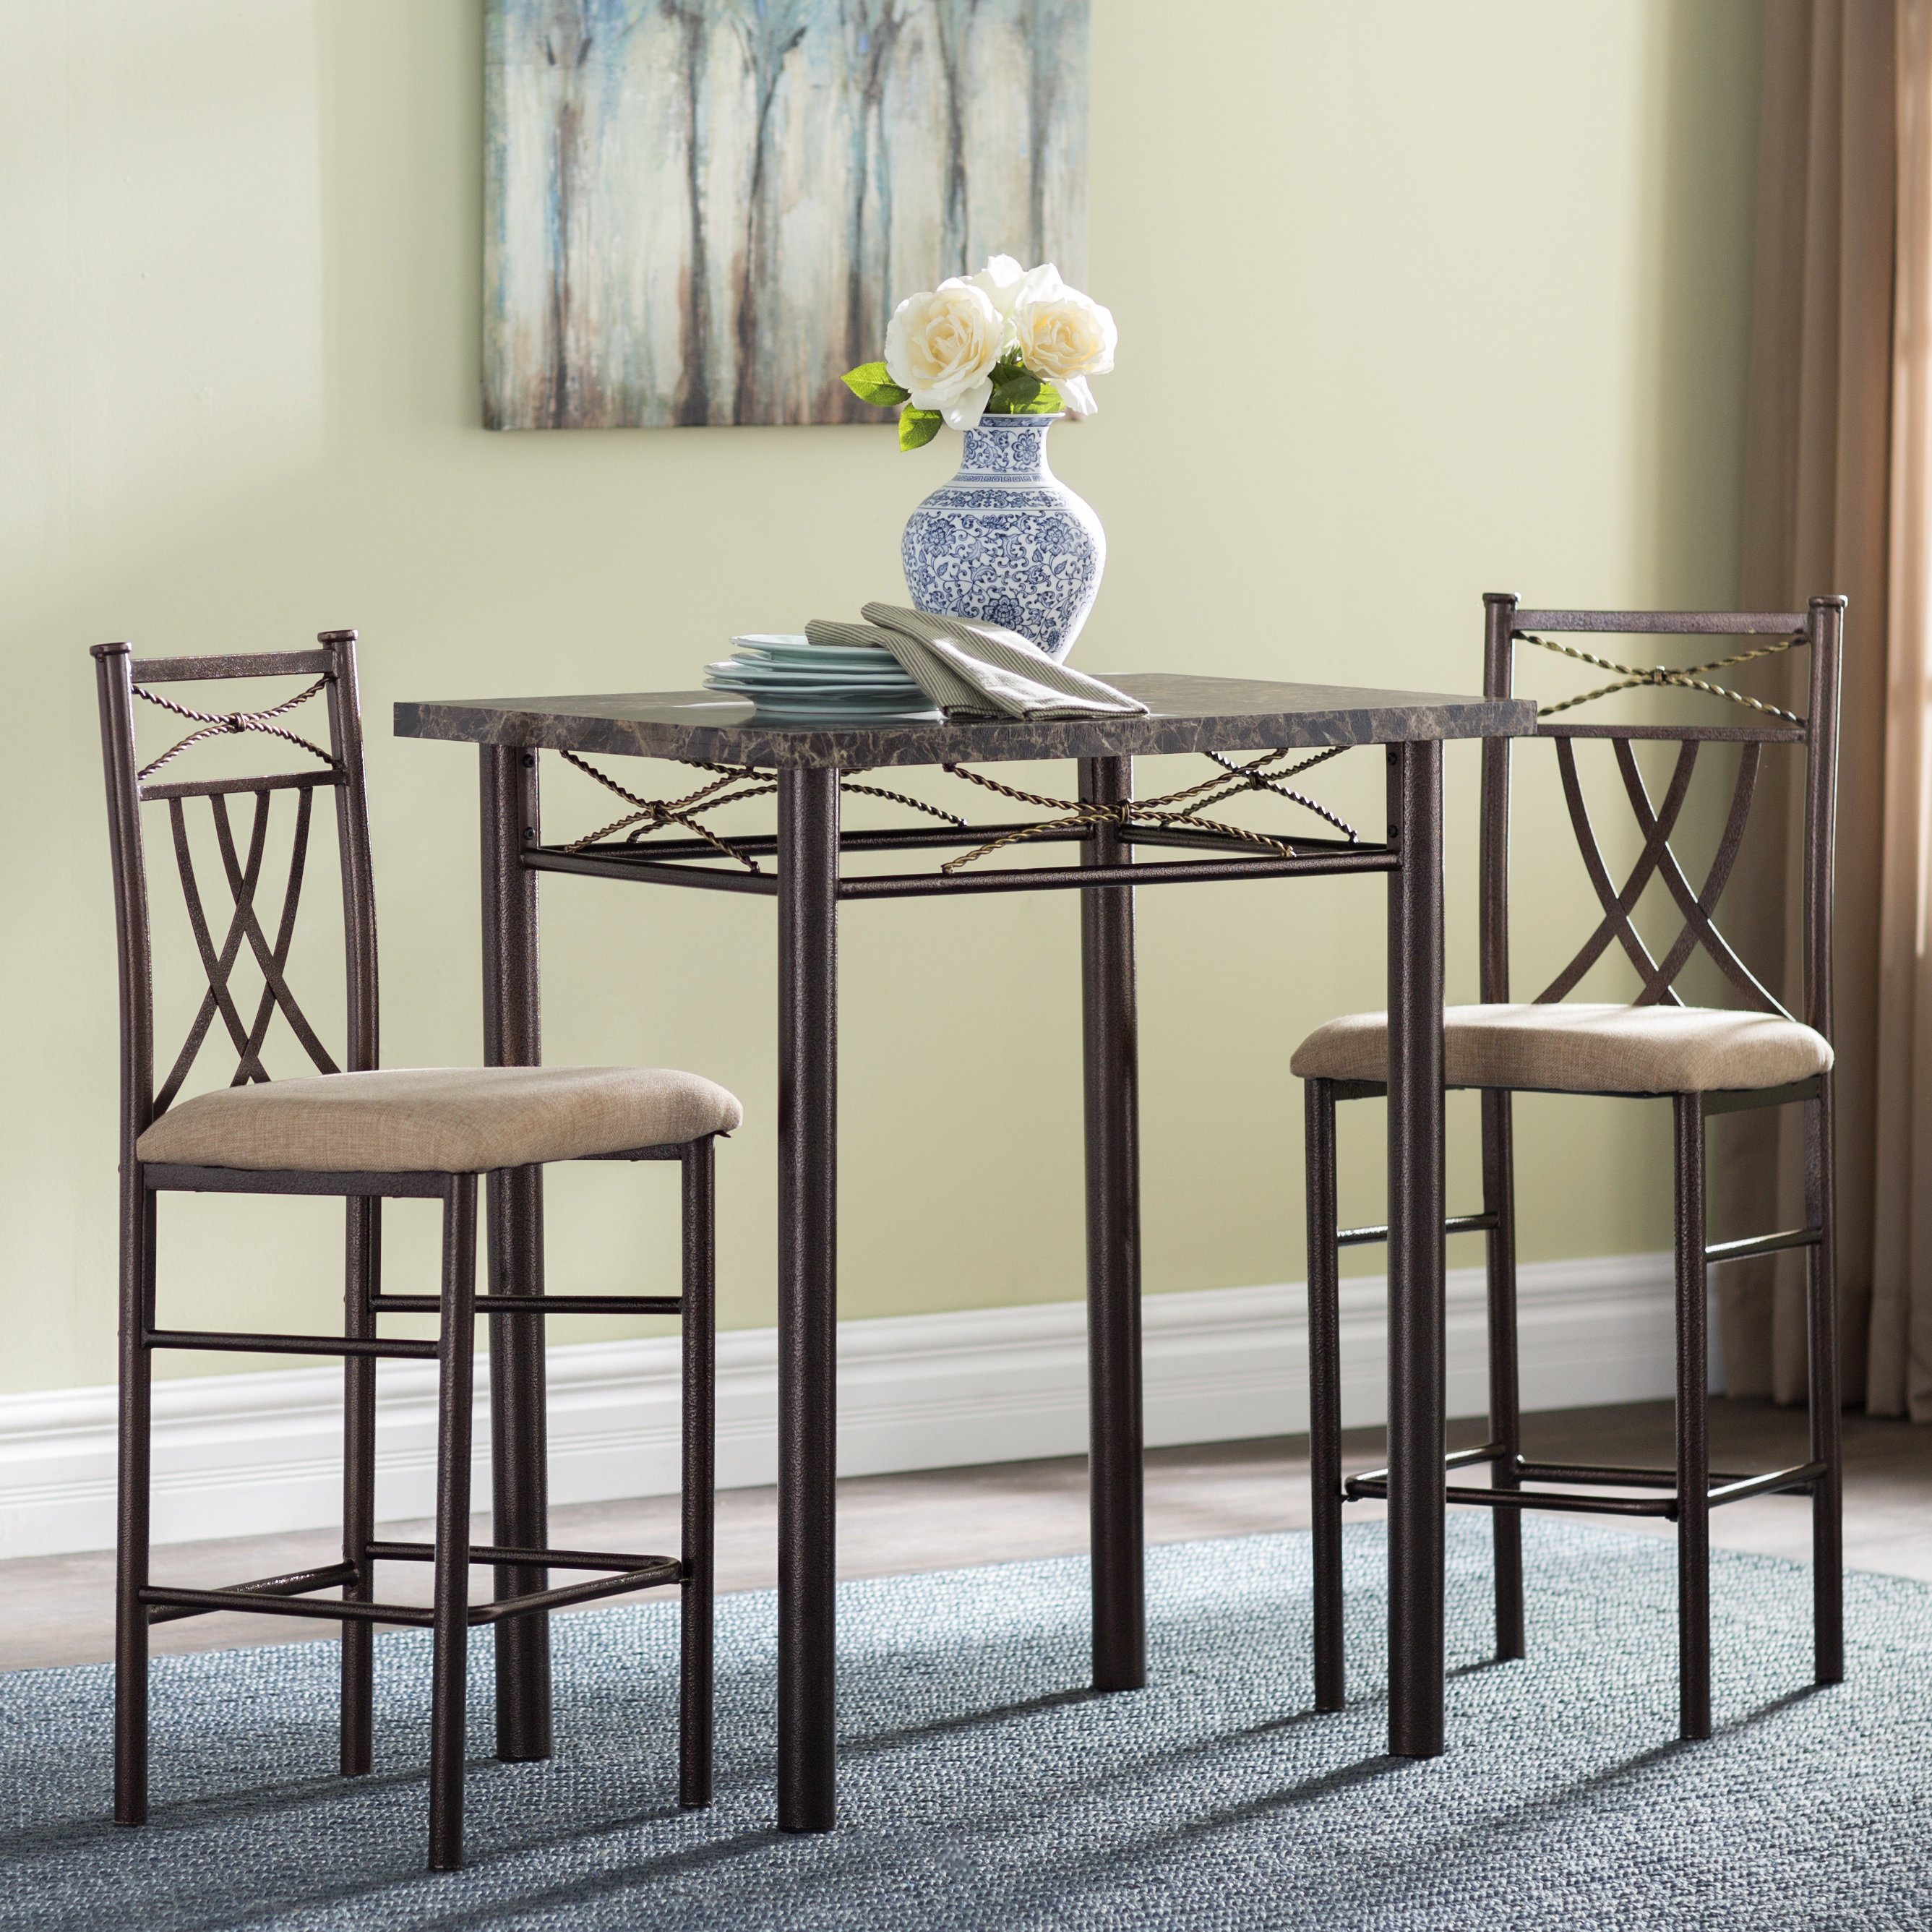 Wayfair Intended For Smyrna 3 Piece Dining Sets (View 10 of 20)